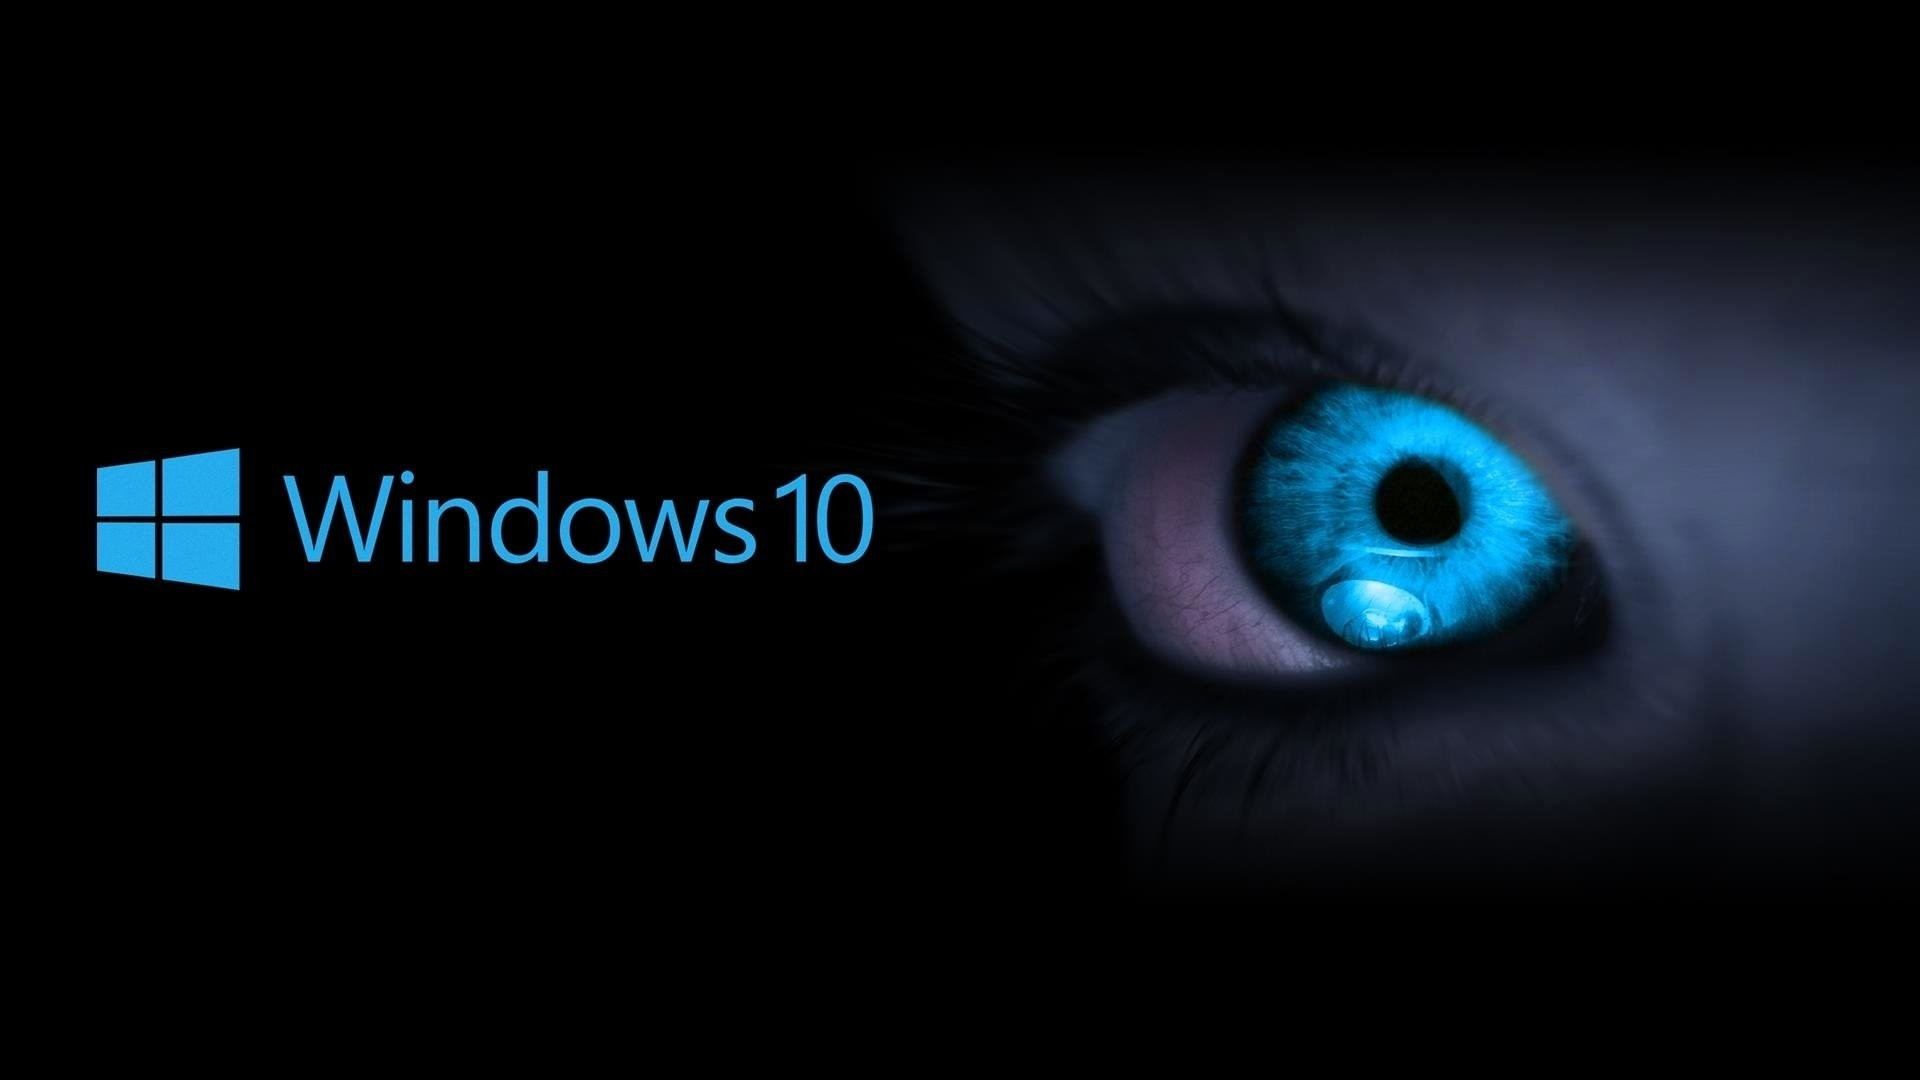 Hd Wallpaper For Windows 10 86 Images